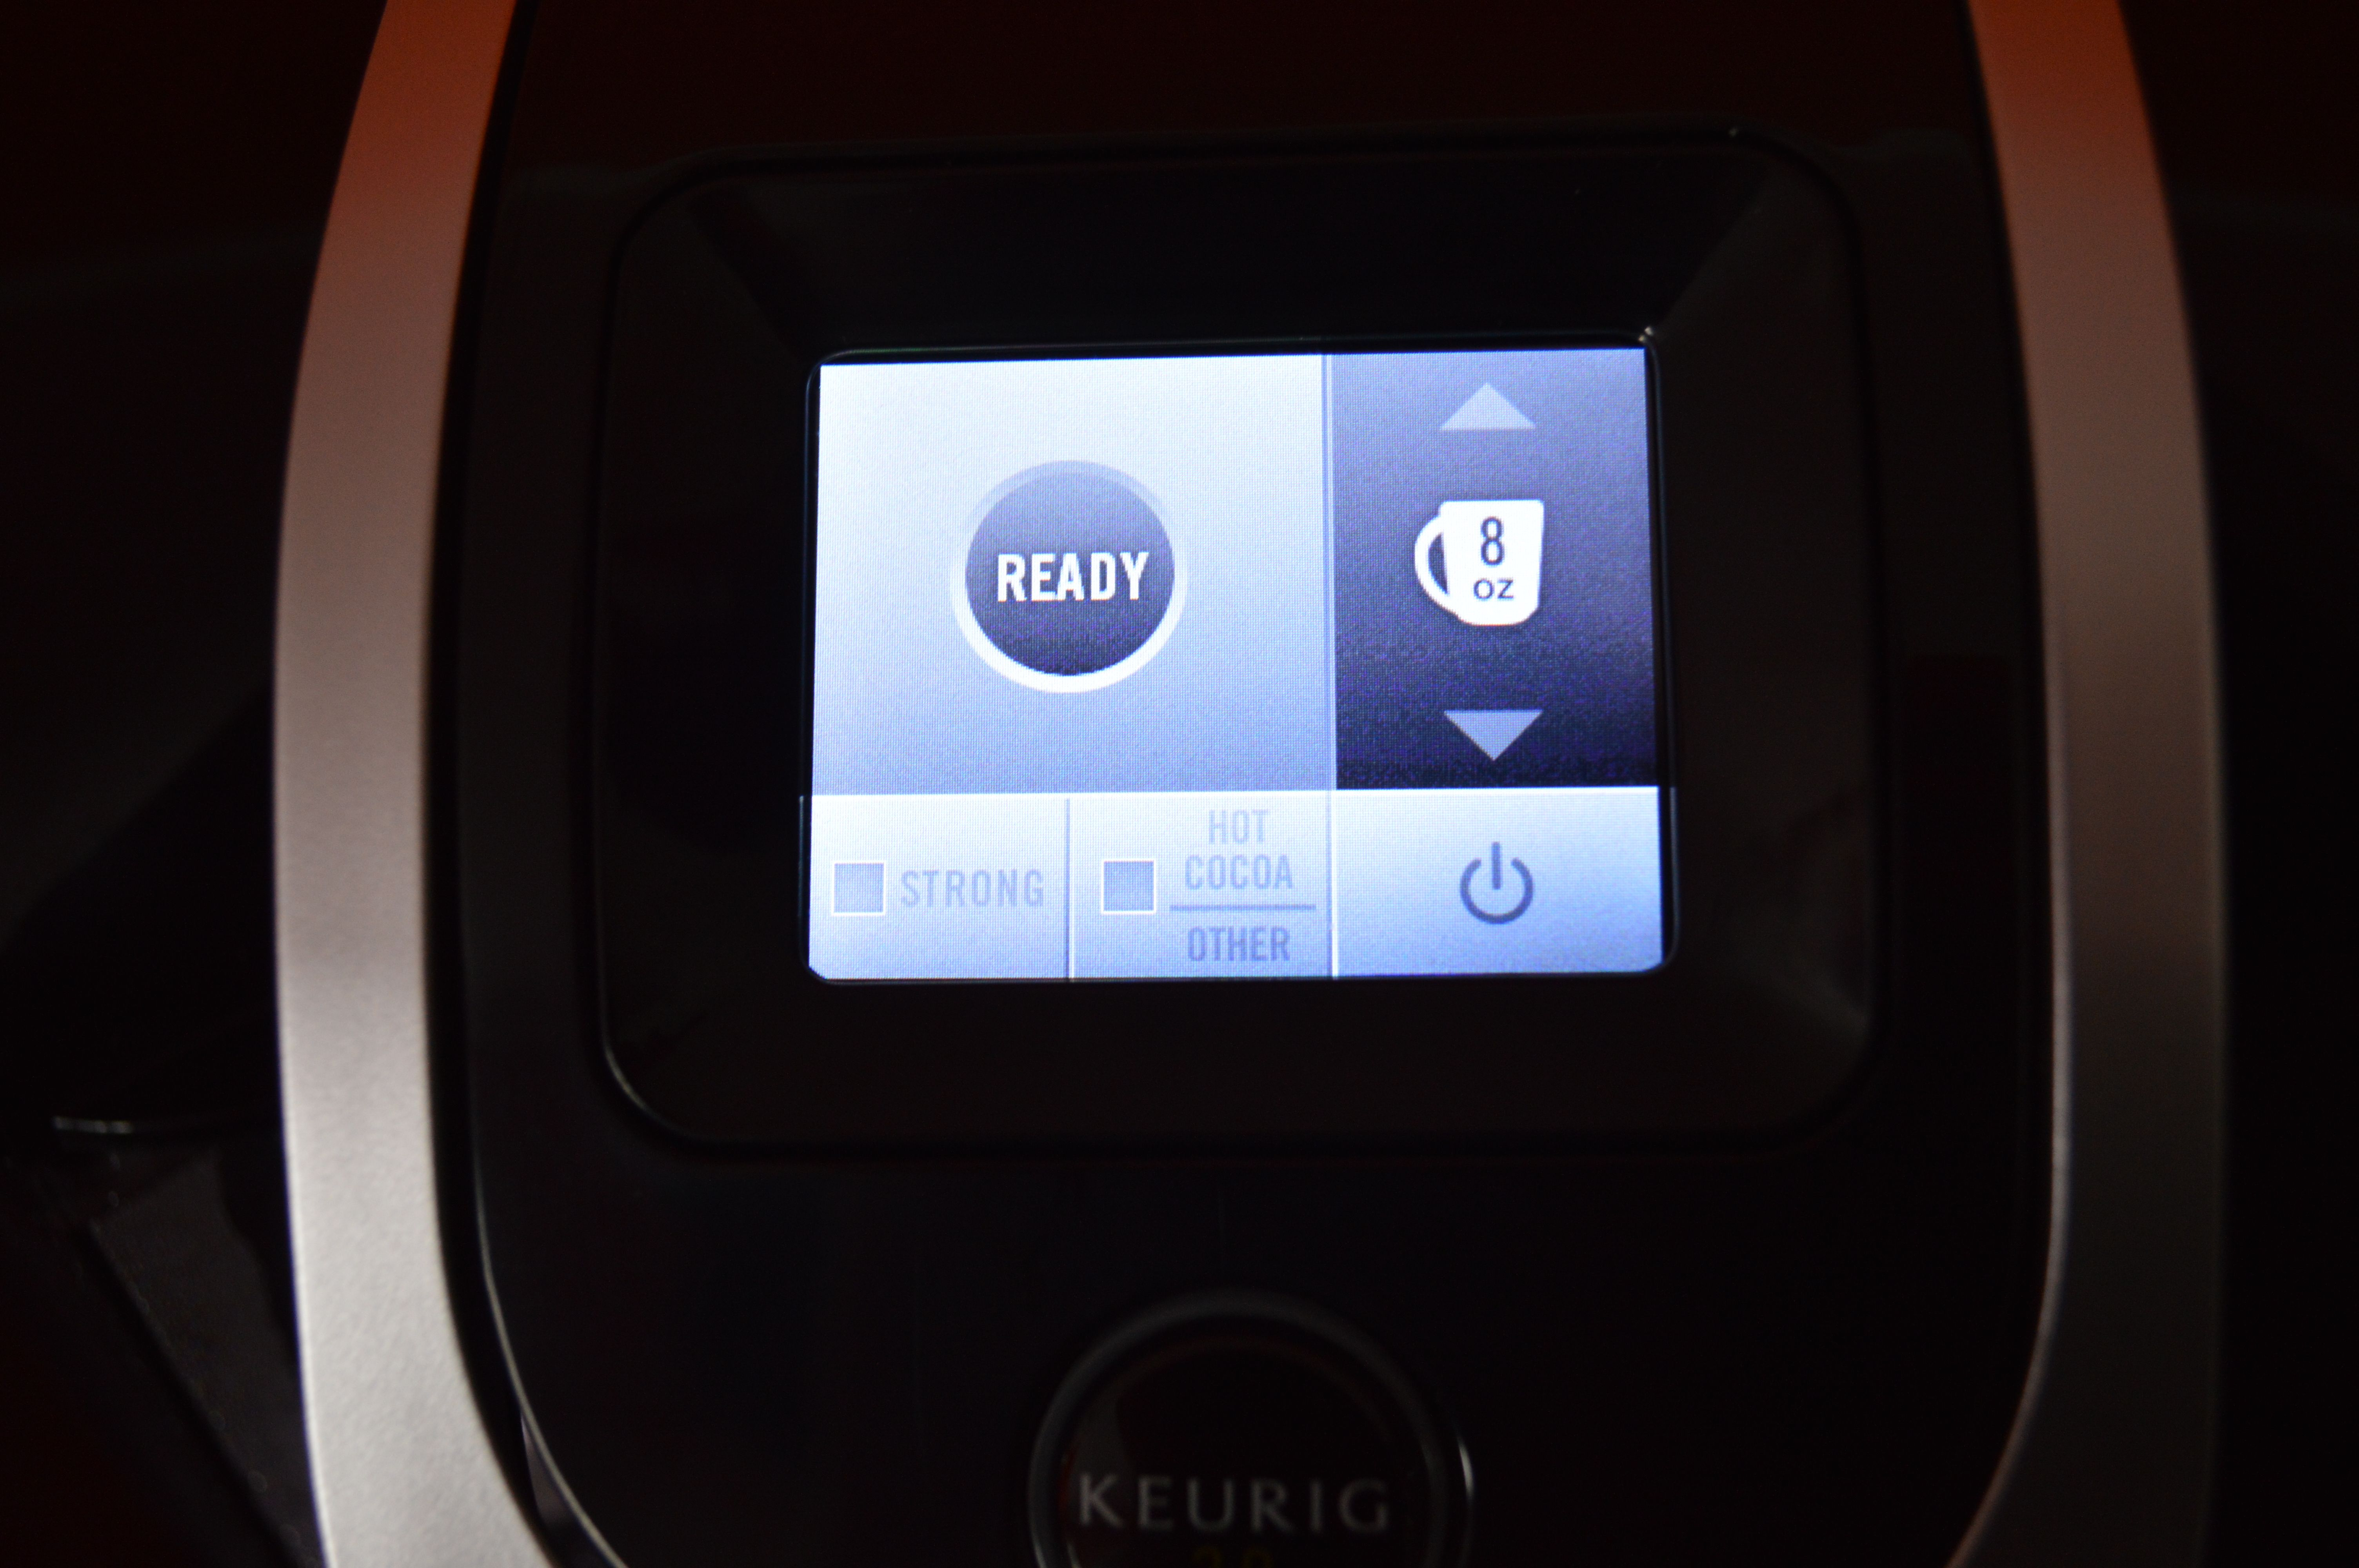 The Keurig 2.0 has a touch screen which you can choose a